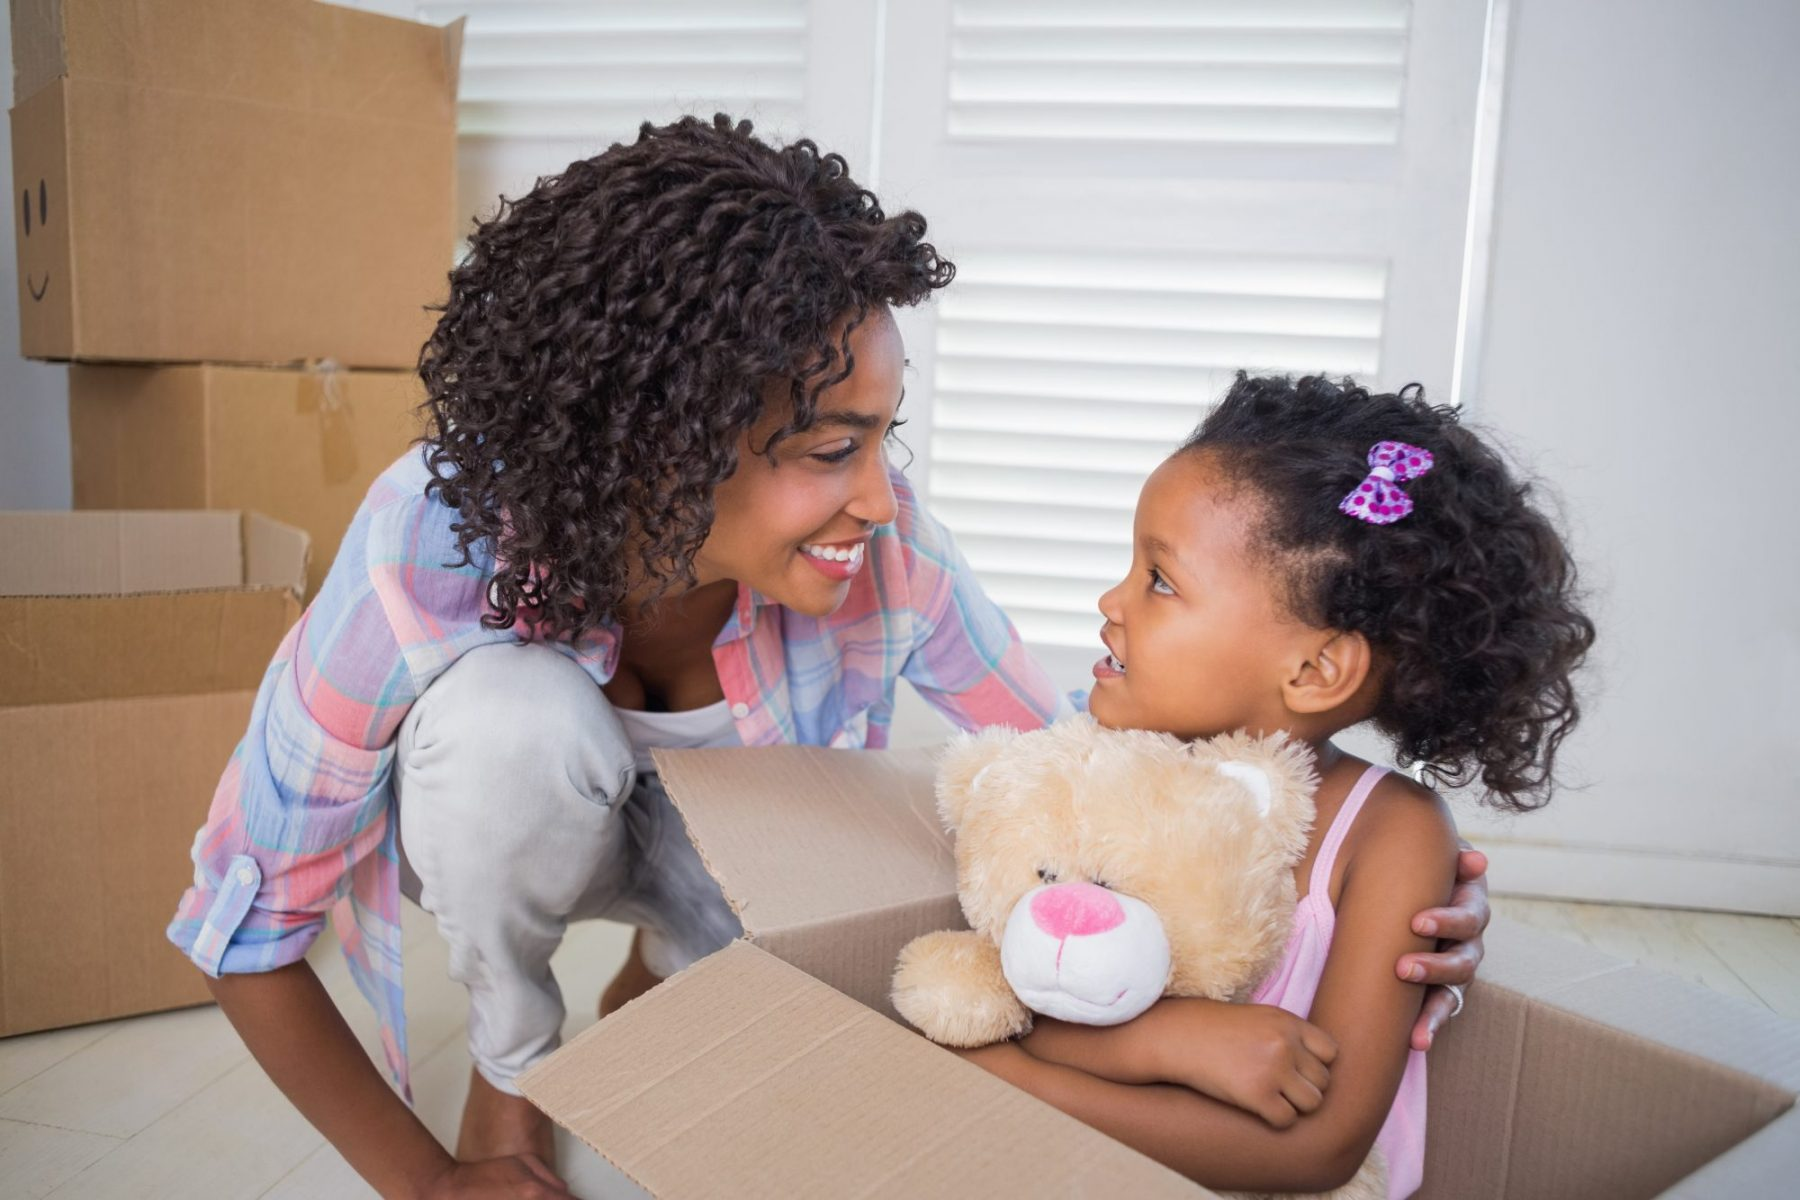 Mother and her daughter preparing for a move with boxes, for help with your parenting agreement speak to our Parenting Agreement Modification Lawyer Michigan.